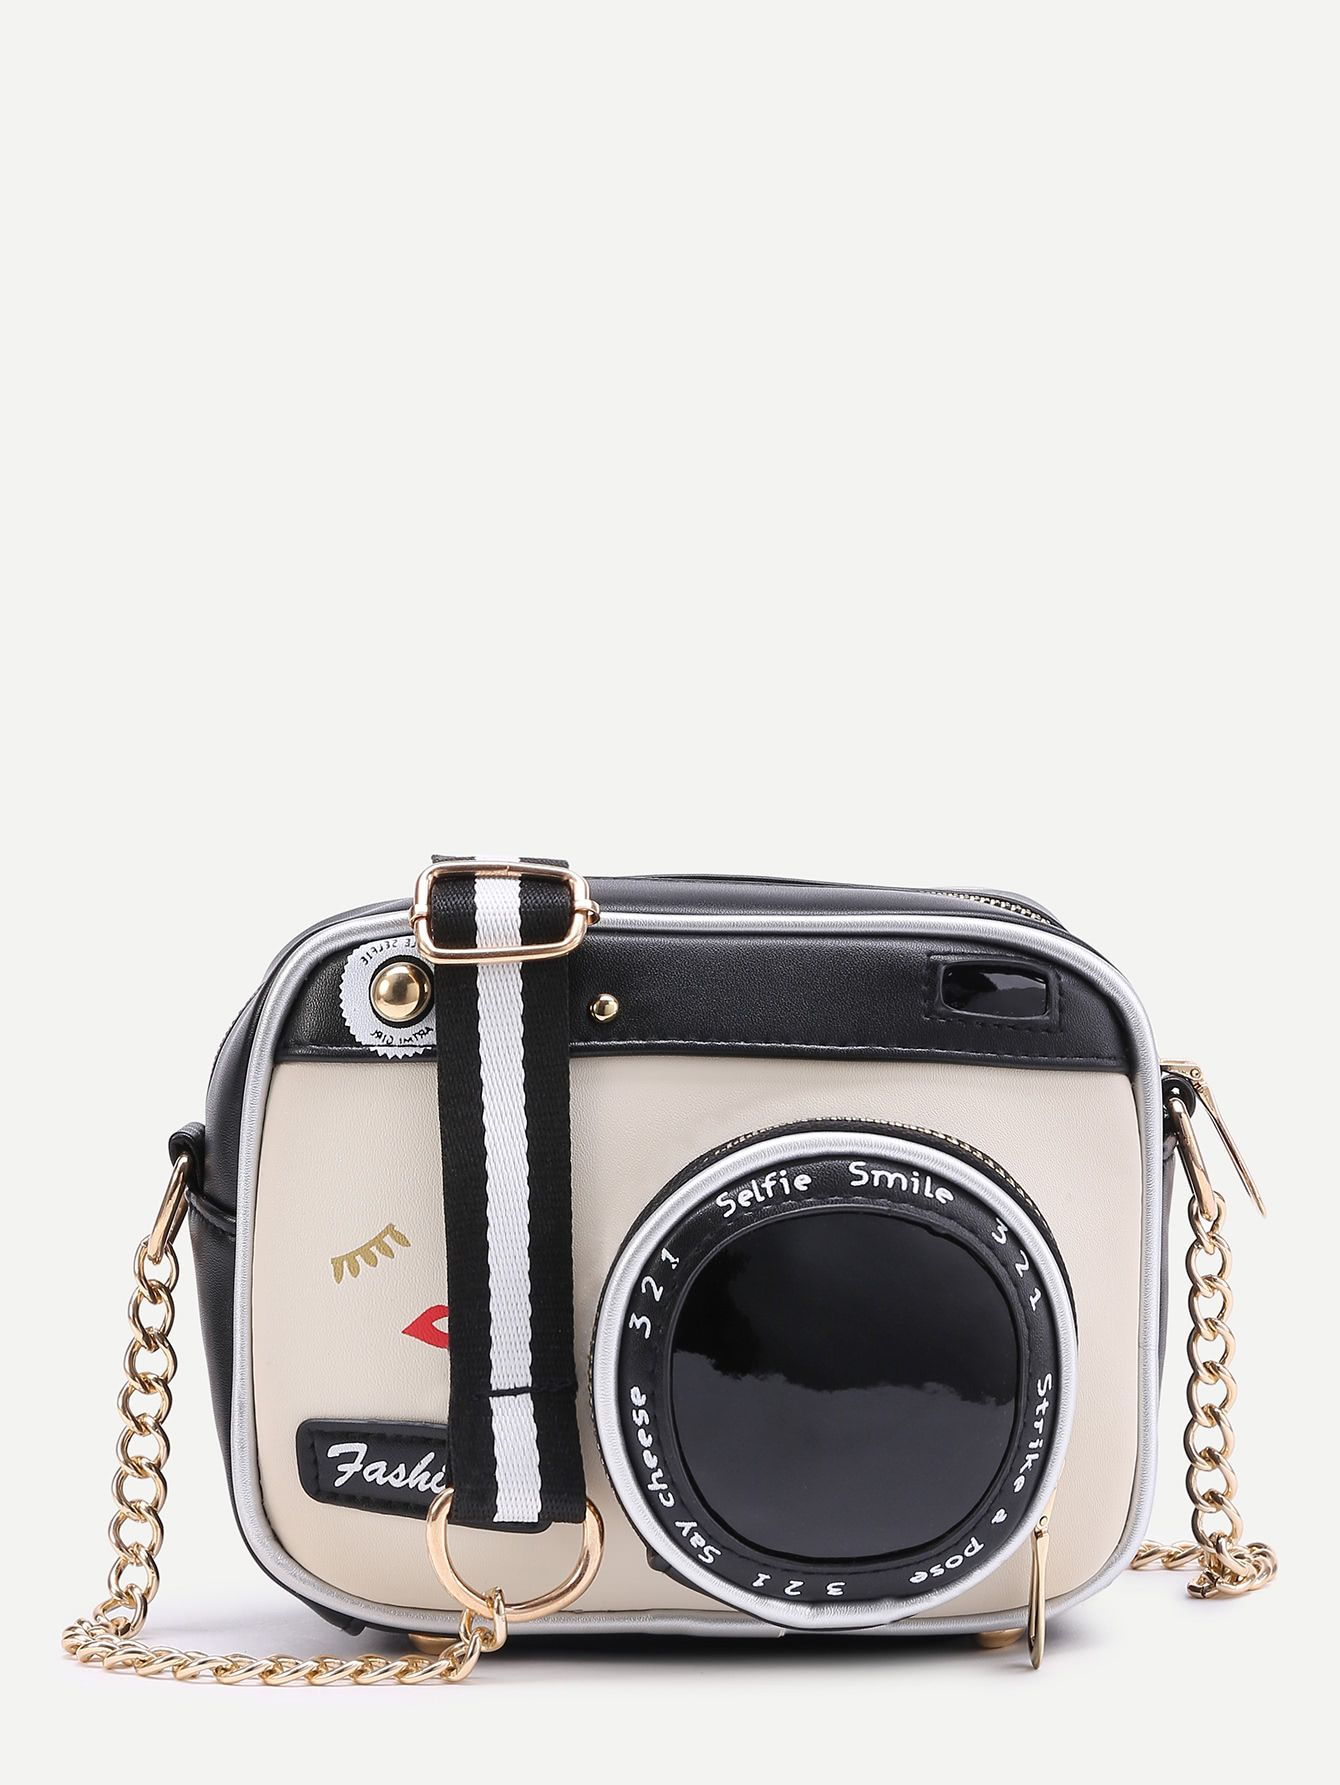 caf29b47c2 Shop Camera Shaped Crossbody Bag With Buckle online. SheIn offers Camera  Shaped Crossbody Bag With Buckle & more to fit your fashionable needs.